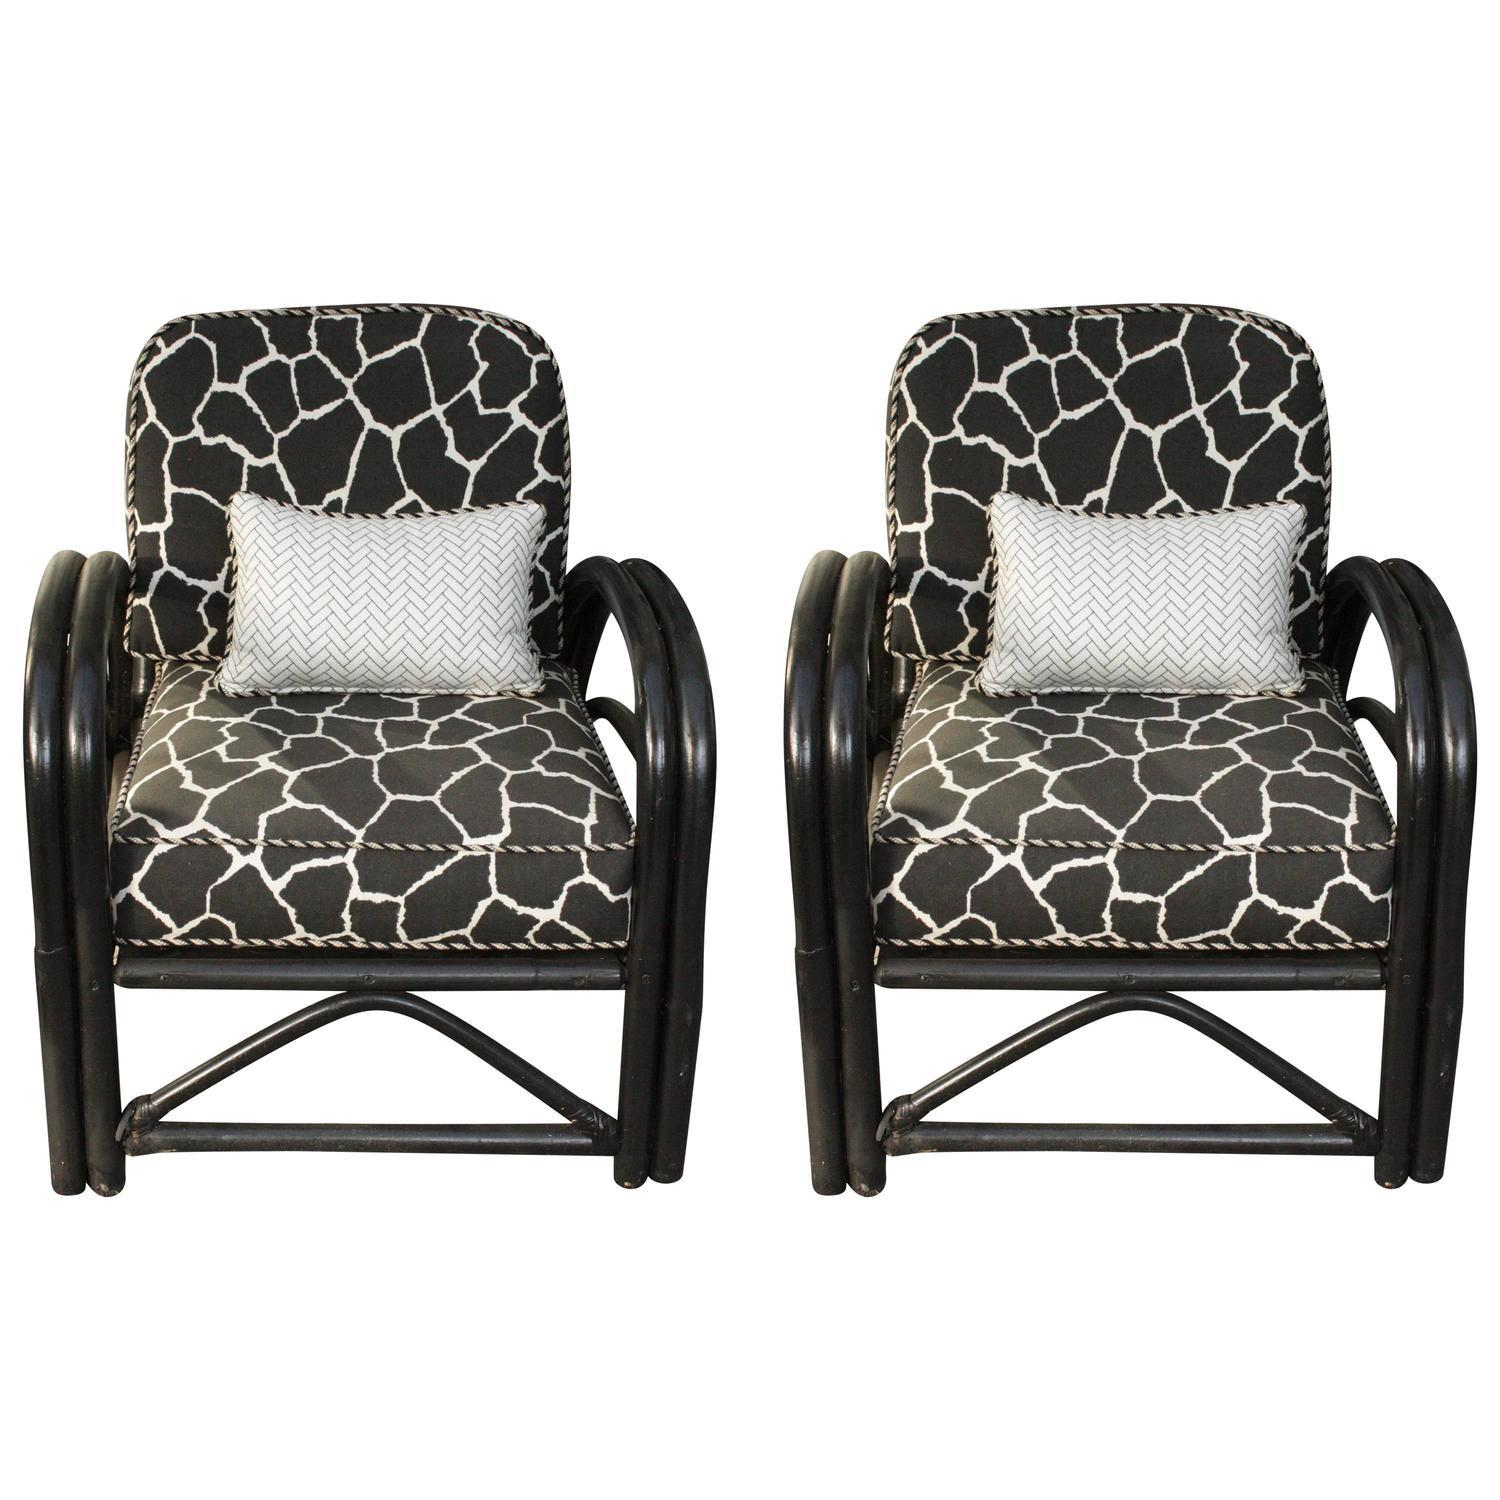 Bamboo arm chairs - Image Of 1960s Outdoor Art Deco Bamboo Arm Chairs Pair